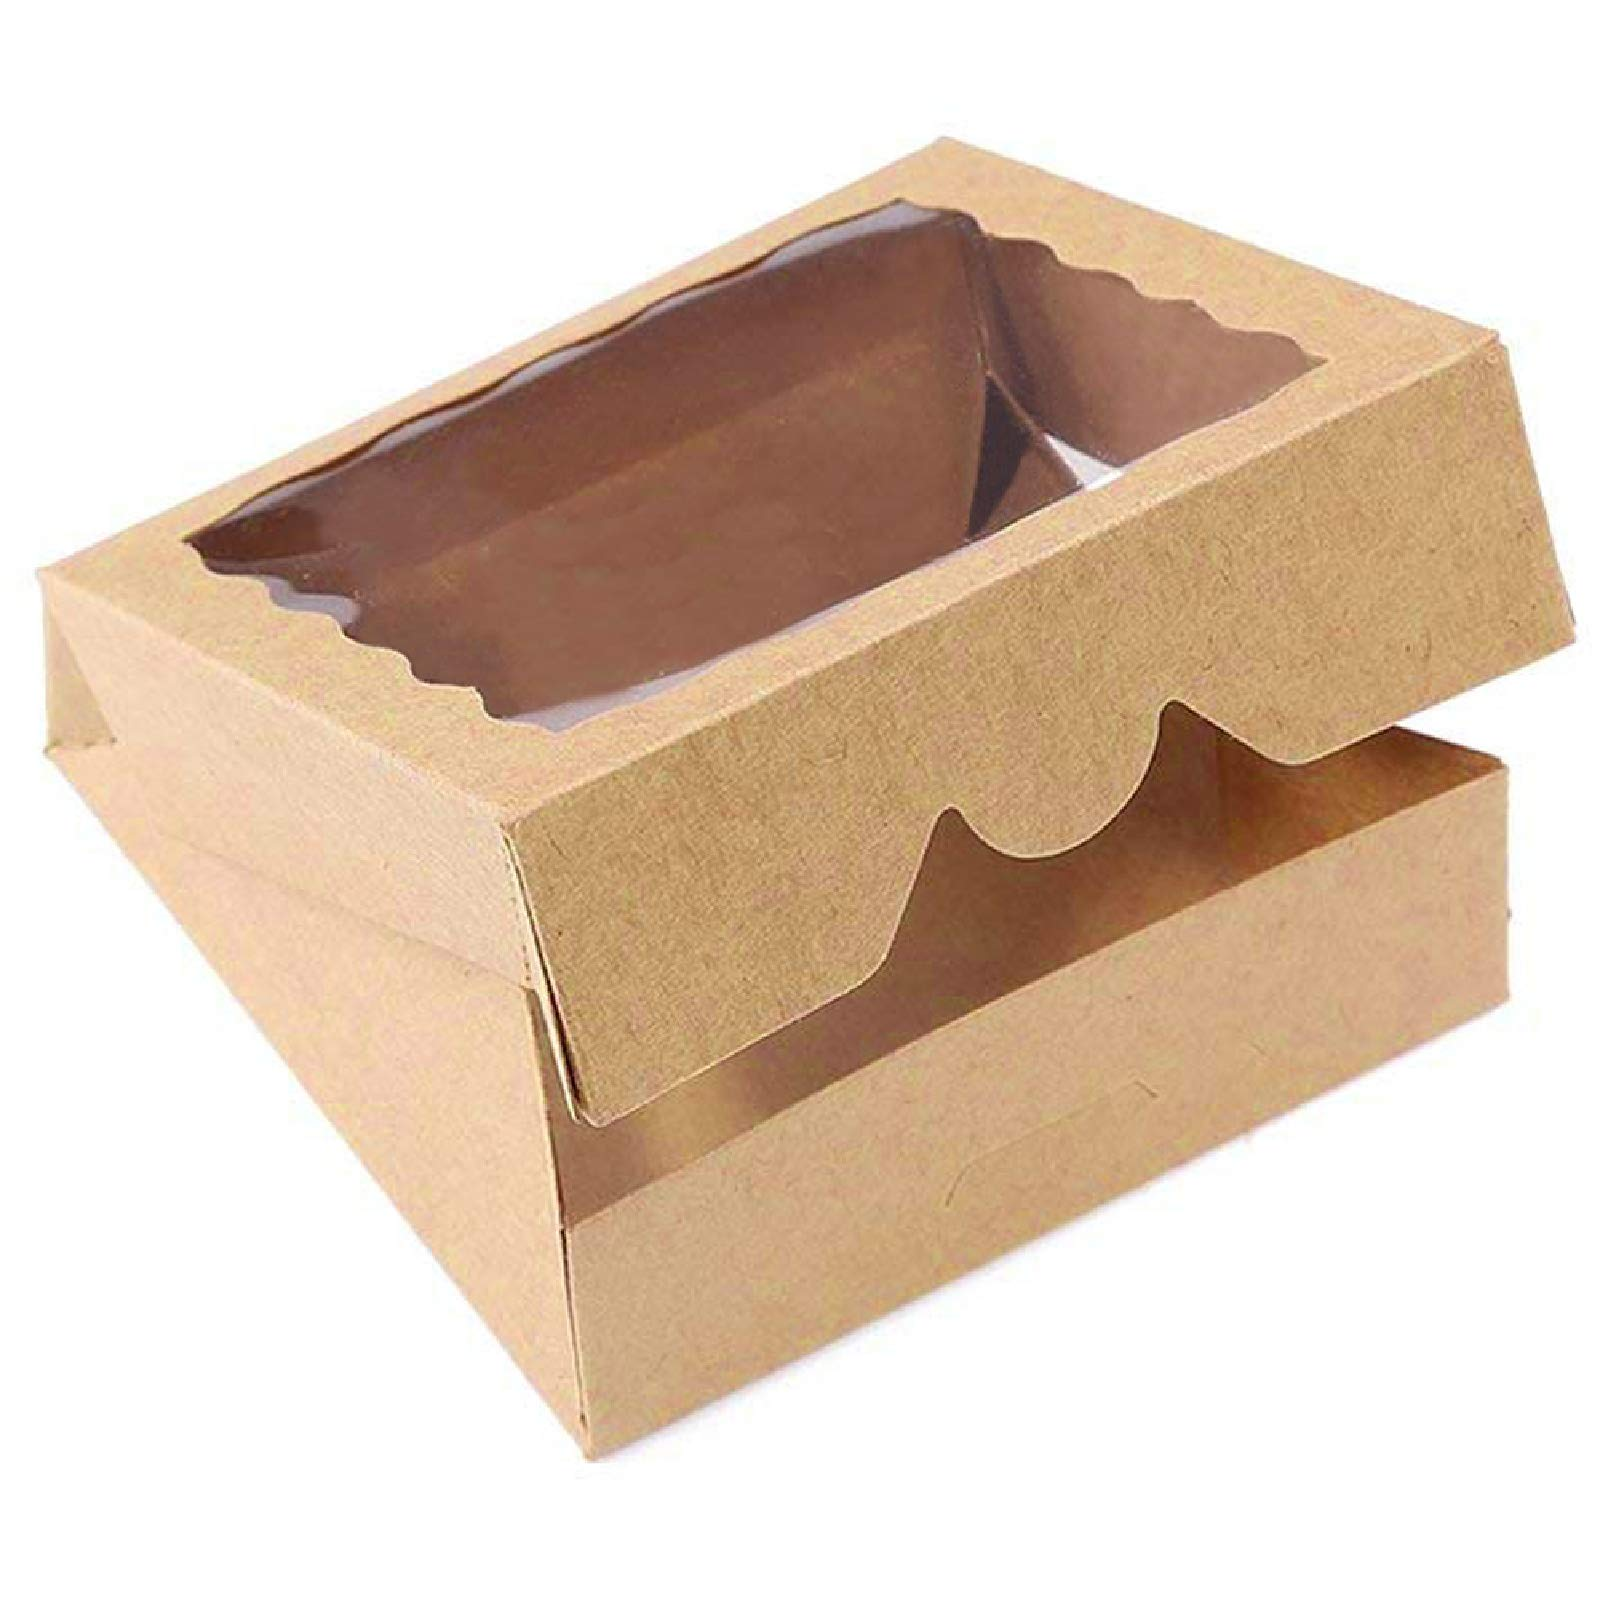 ONE MORE 9inch Brown Bakery Pie Boxes,Large Kraft Cookie Boxes with PVC Window Natural Disposable box 9x9x2.5inch,12 of Pack by ONE MORE